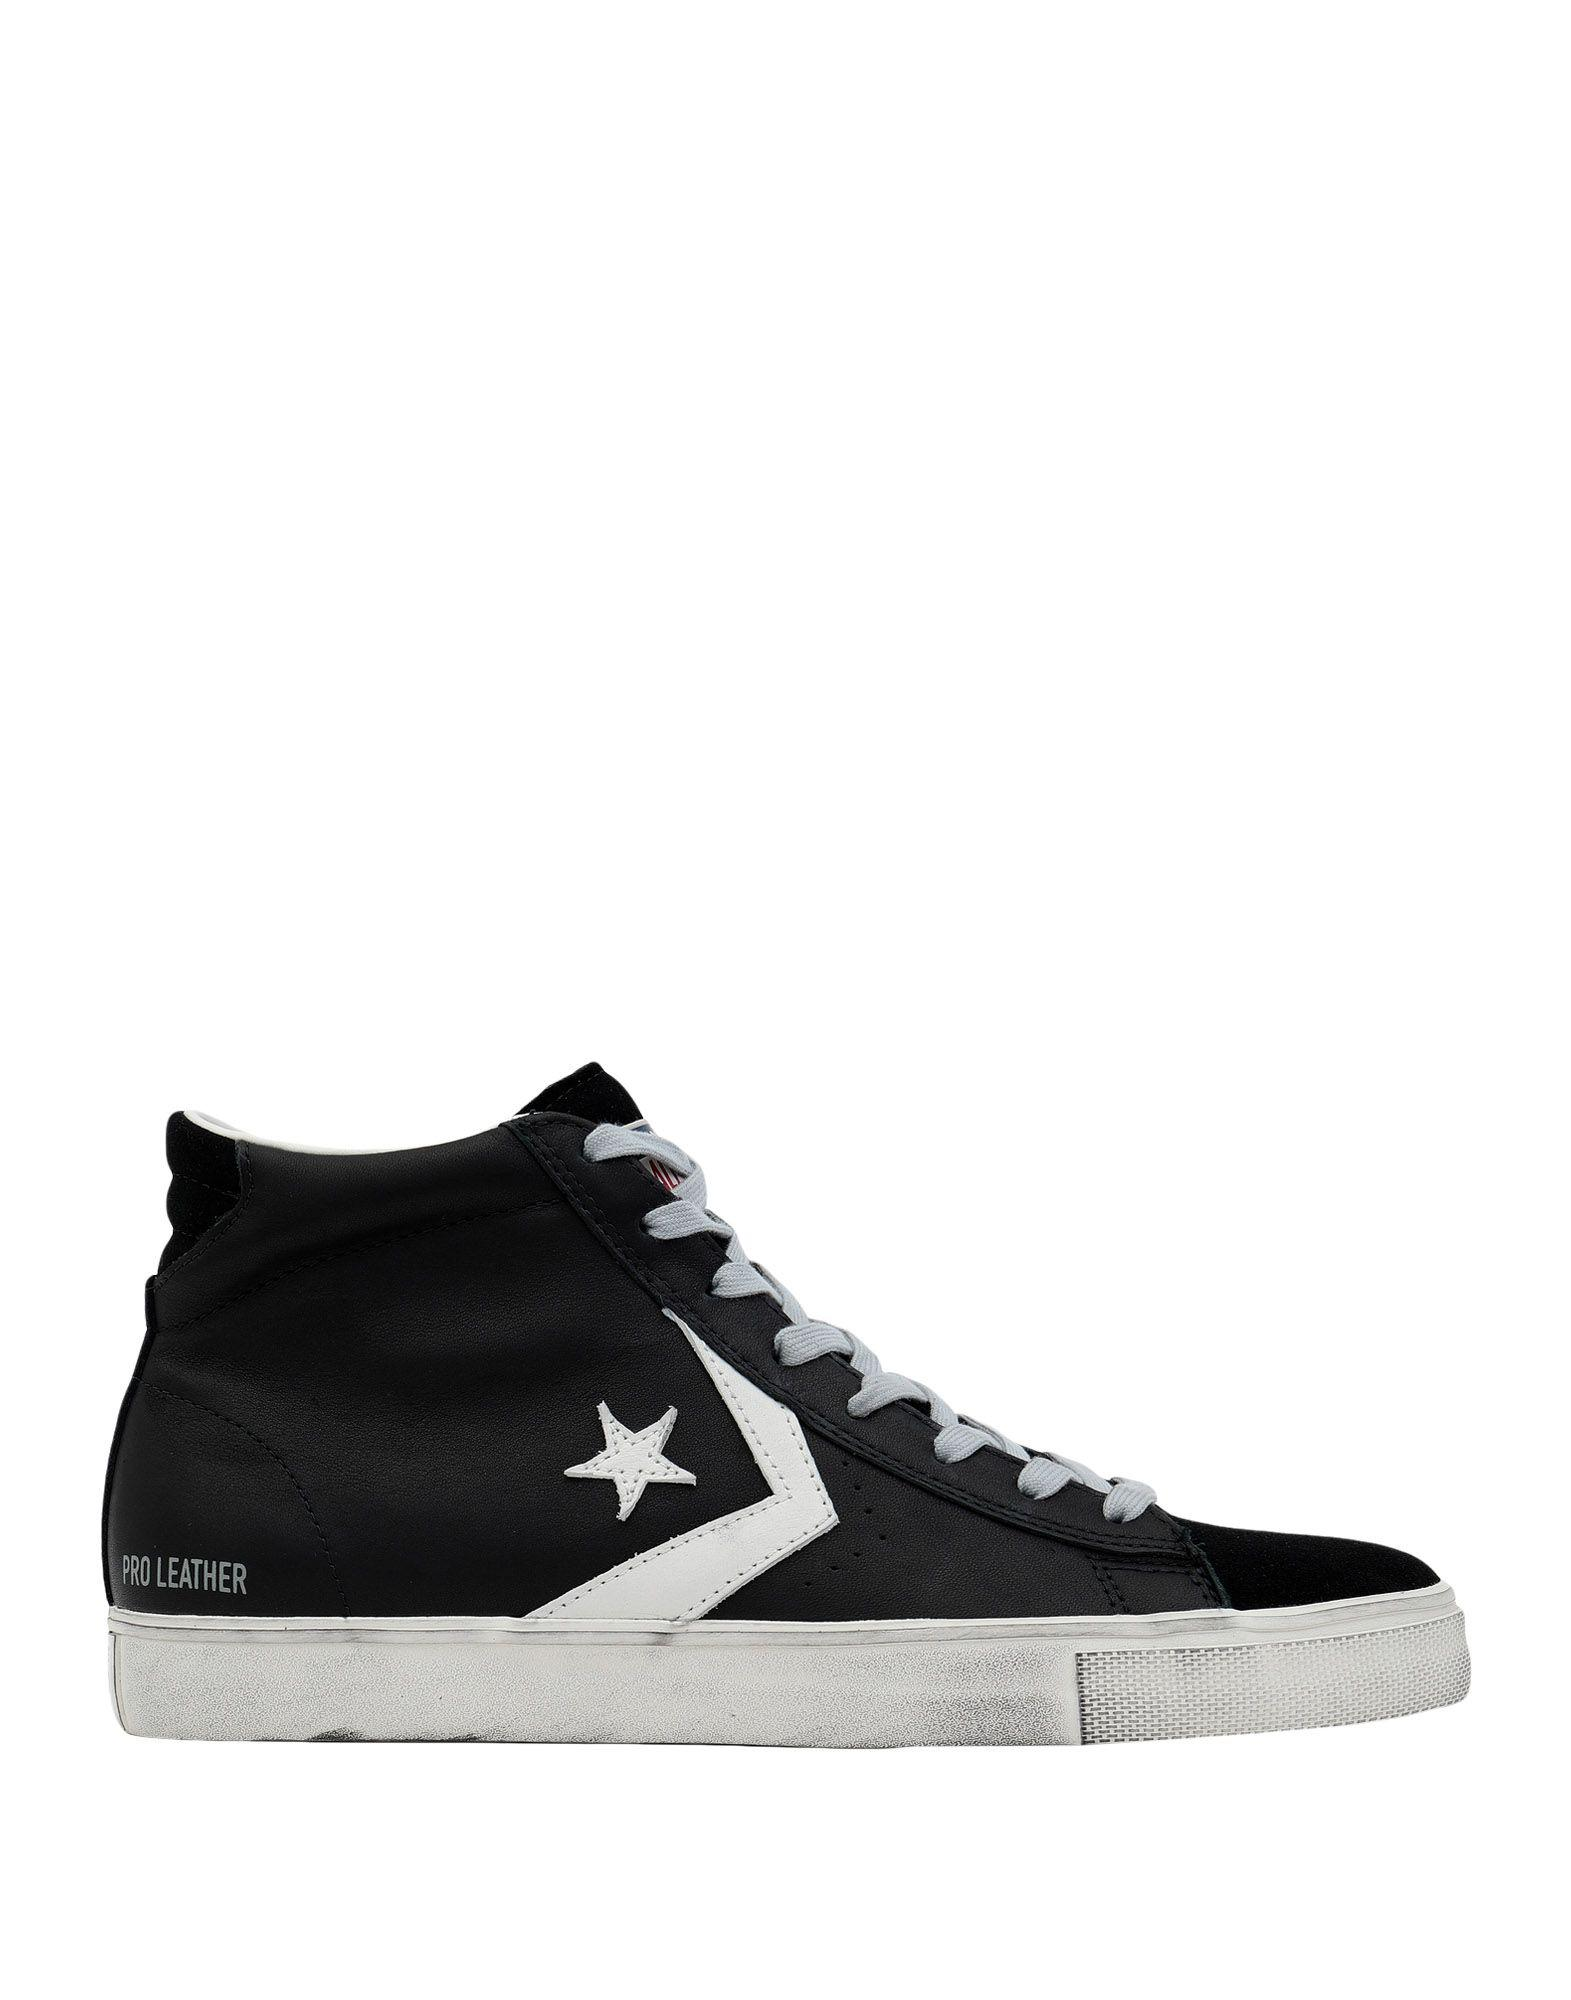 b630498bfab0 Converse High-tops   Sneakers in Black for Men - Lyst